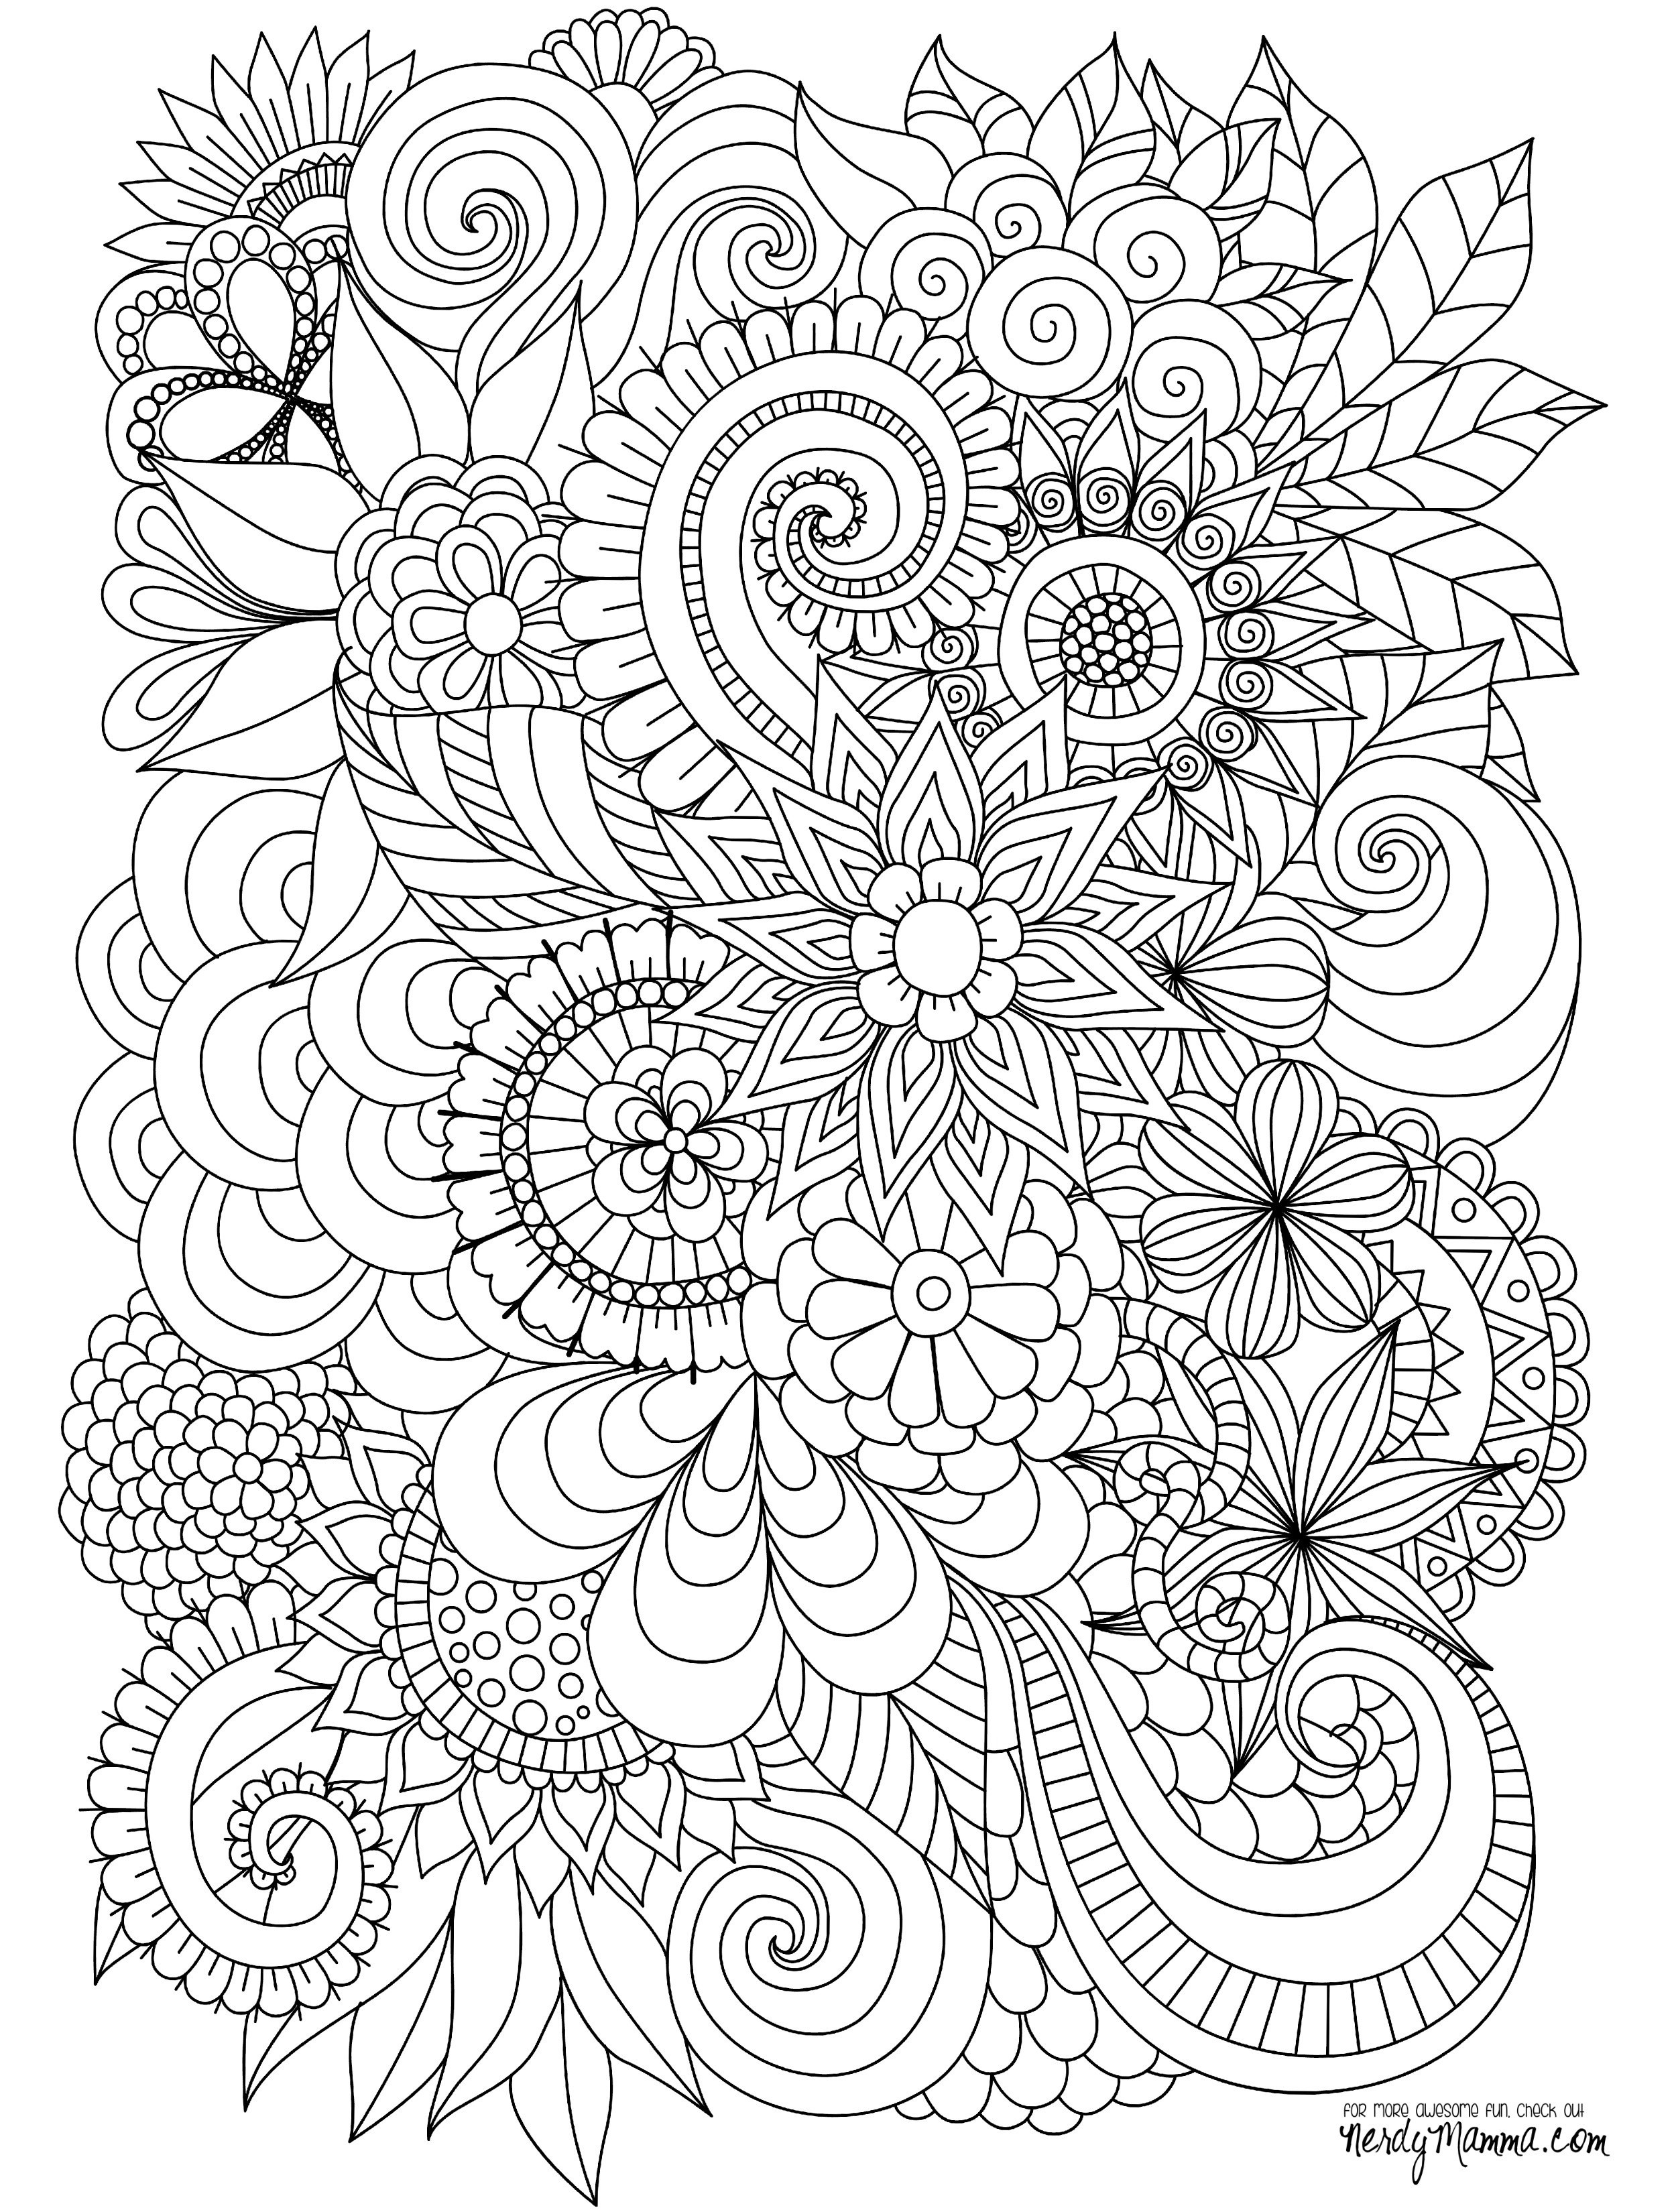 zentangle coloring pages free printable zentangle to print for free zentangle kids coloring pages printable zentangle free coloring pages